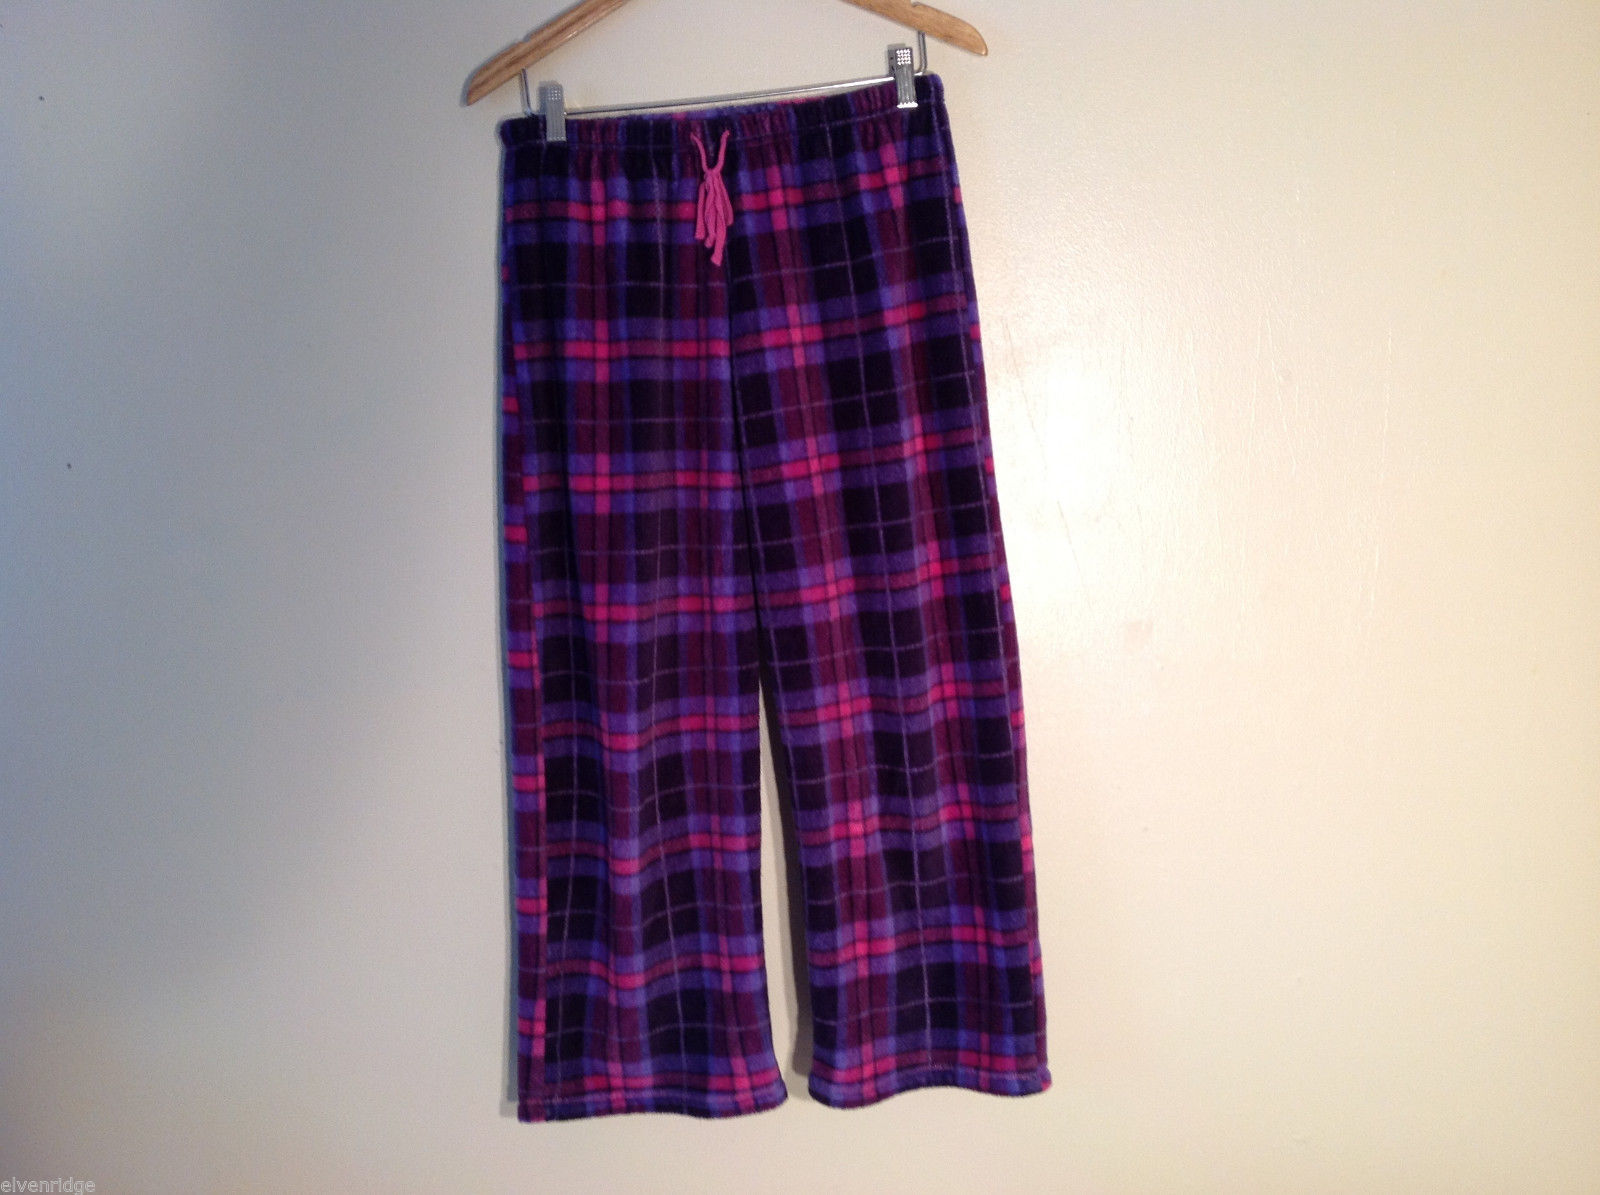 No Brand Women's Size M Pajama Pants Bottoms Drawstring Waist Plaid Purple Pink